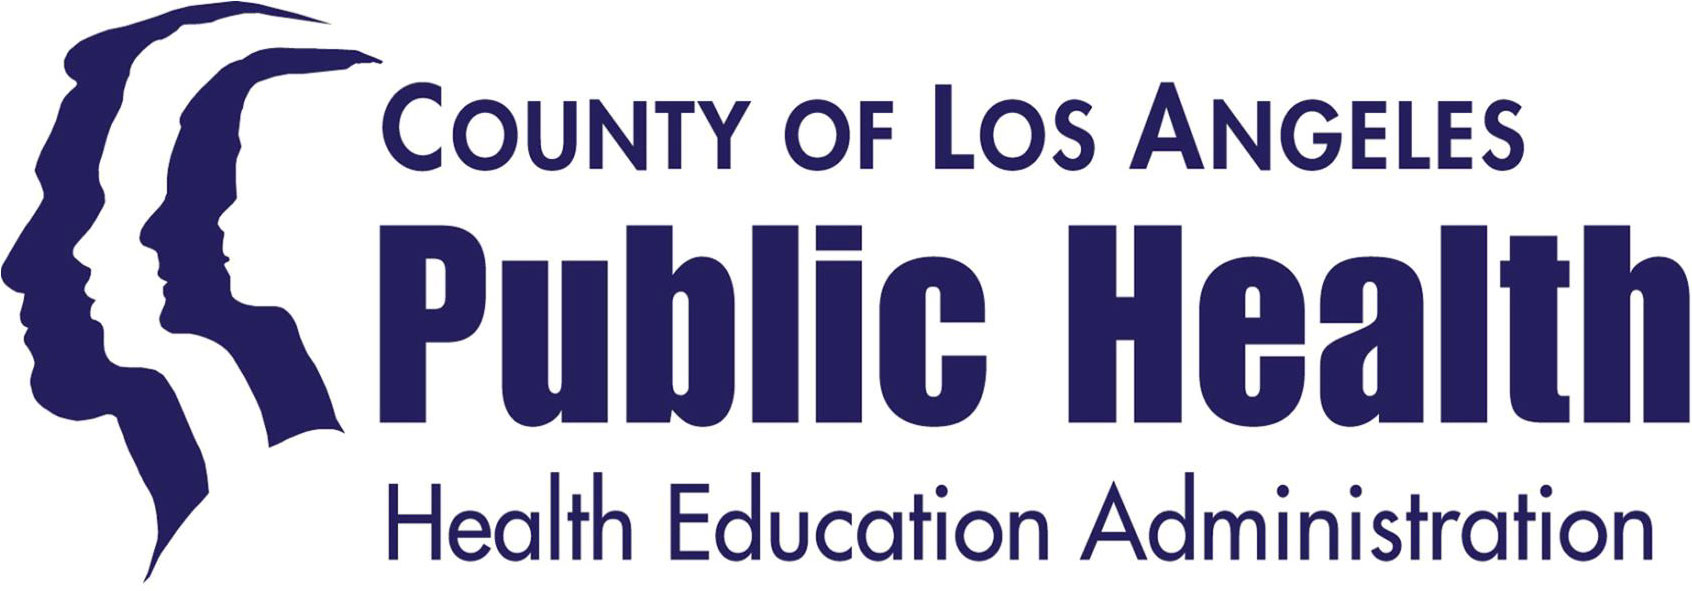 County of Los Angeles Department of Public Health Logo.